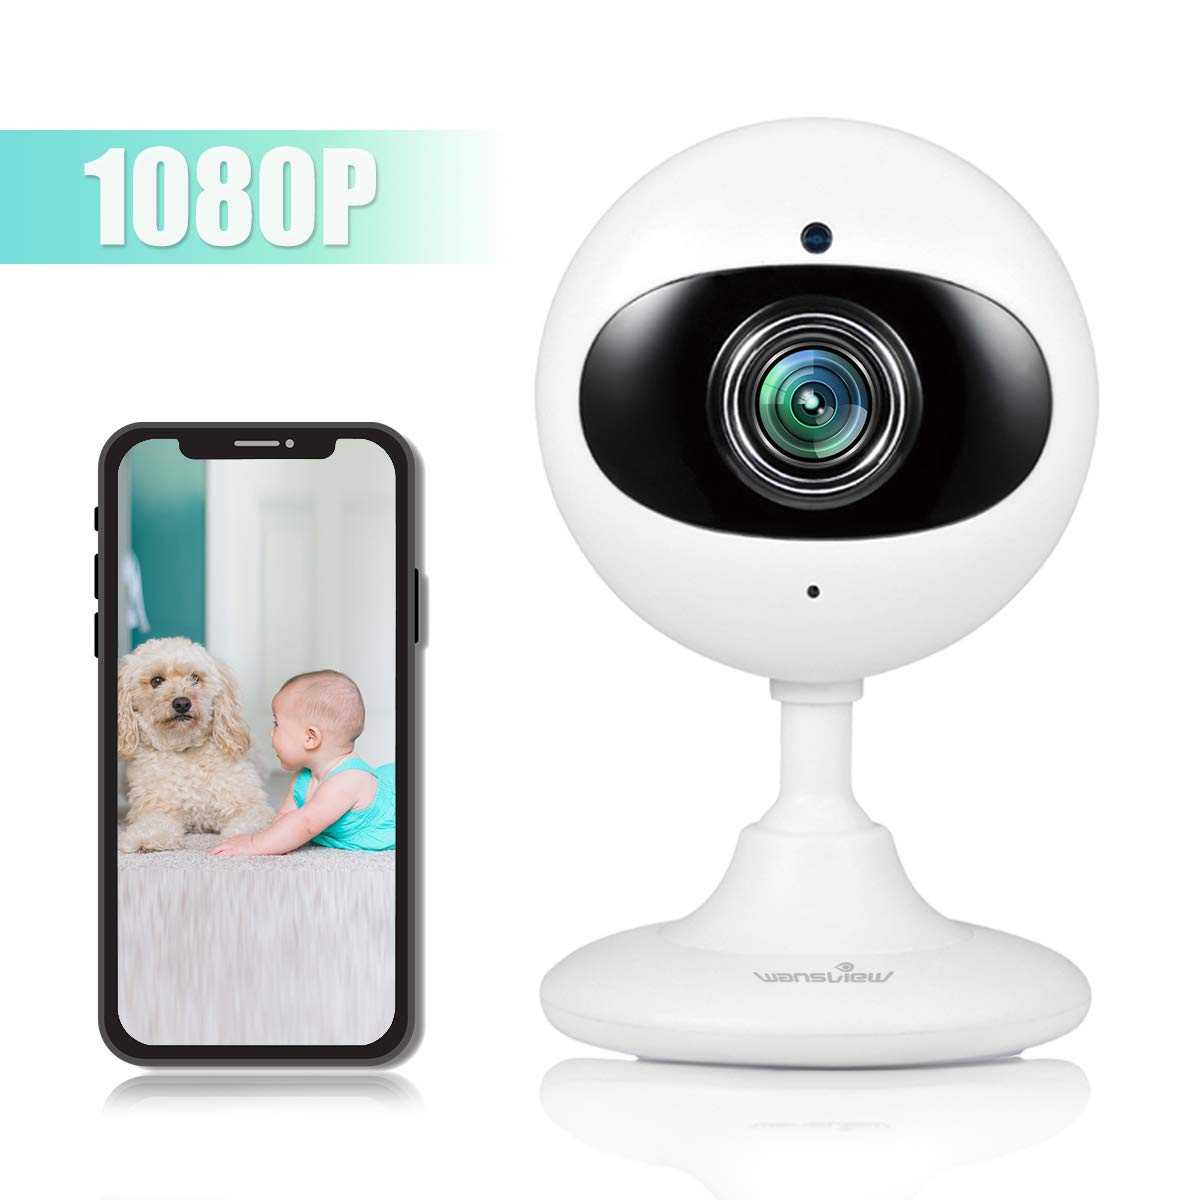 Best Indoor Security Camera 2020 Amazon.: Wansview Wireless Security Camera, 1080P Home WiFi